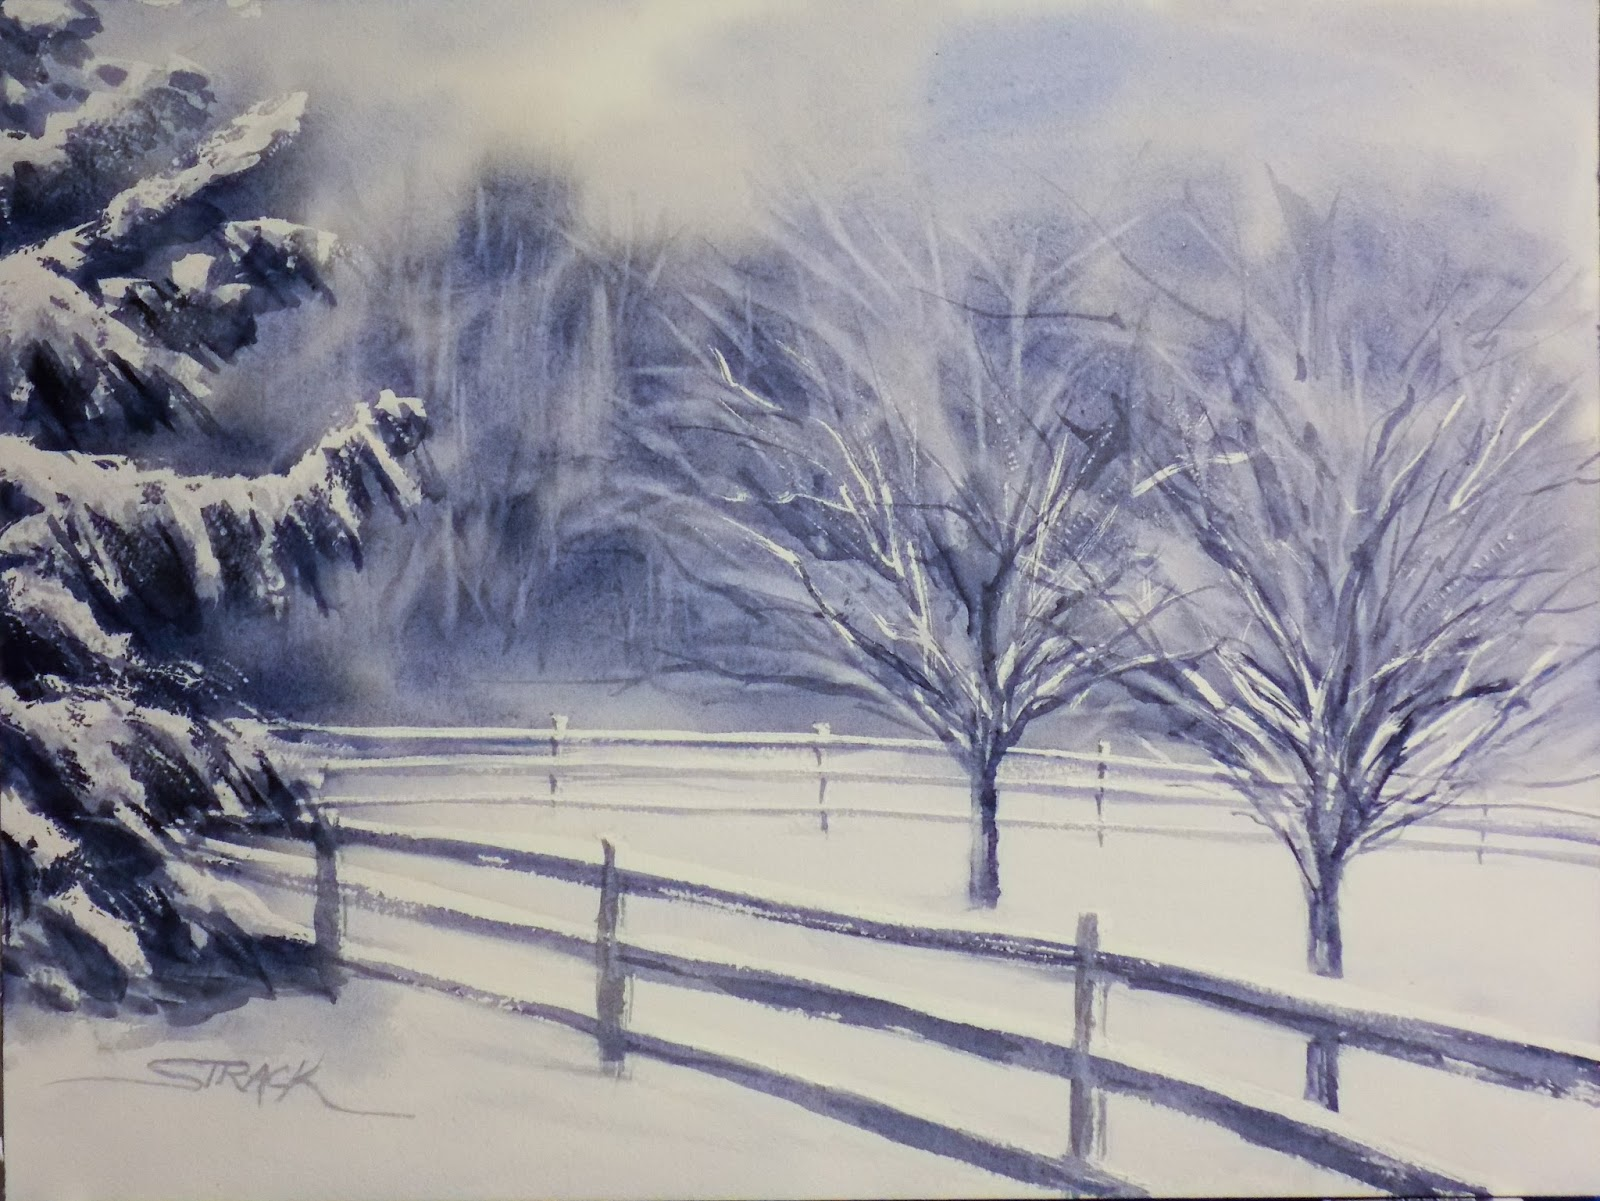 Painting Snowy Landscapes In Watercolor